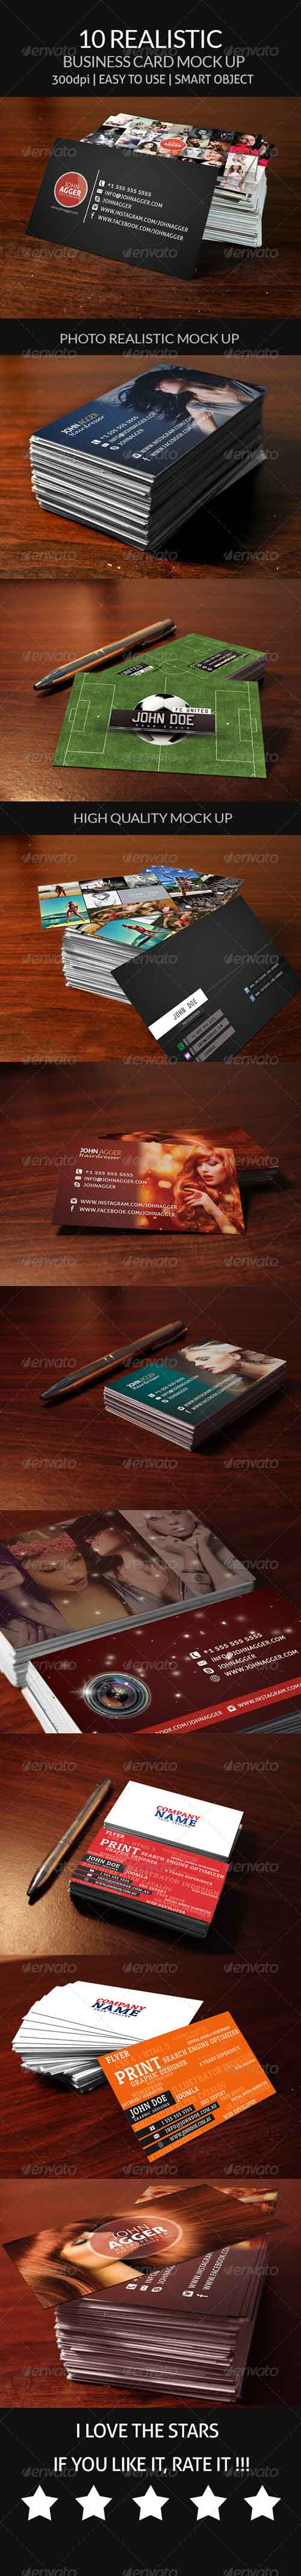 GR - 10 Realistic Business Card Mock Up 8043746